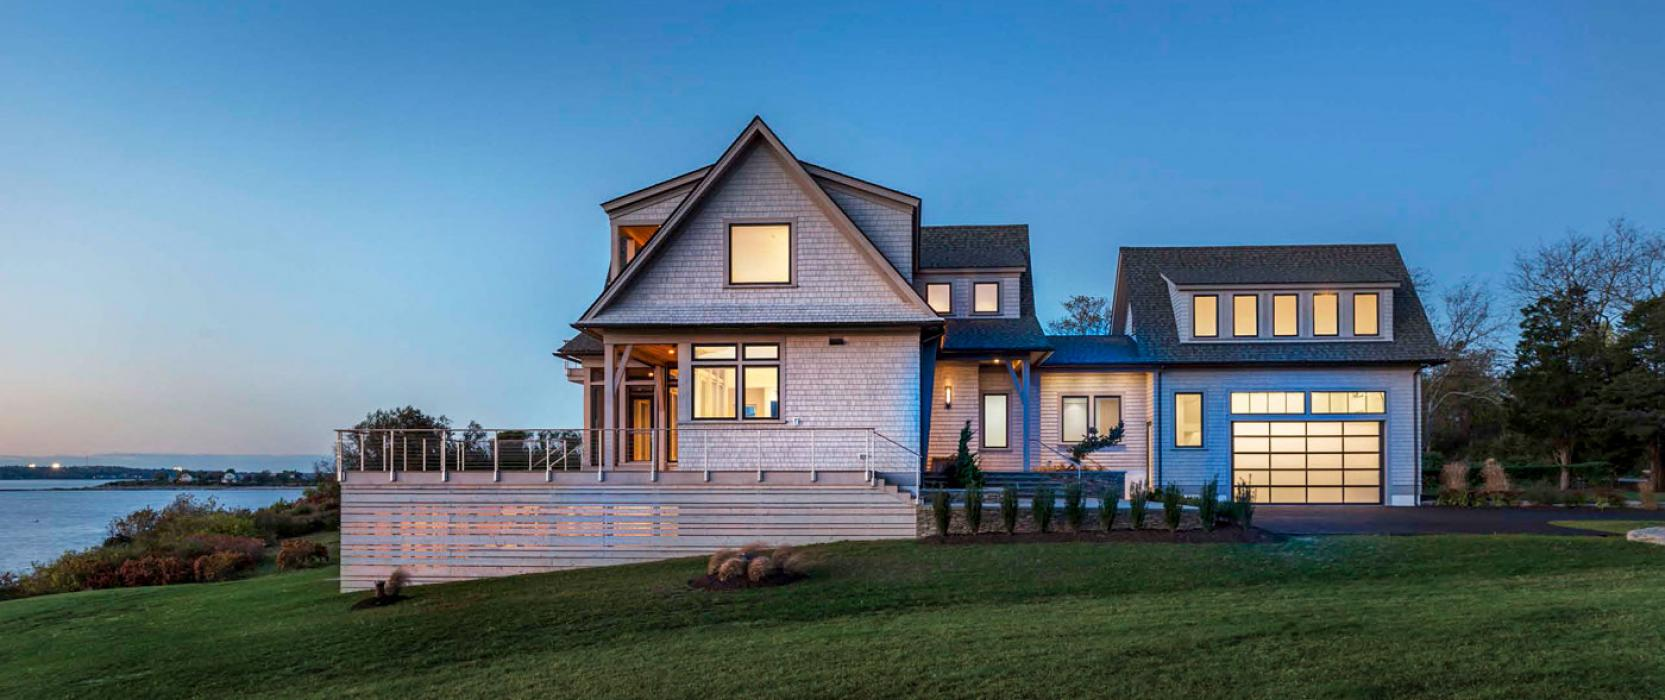 side view of custom home on the water at dusk